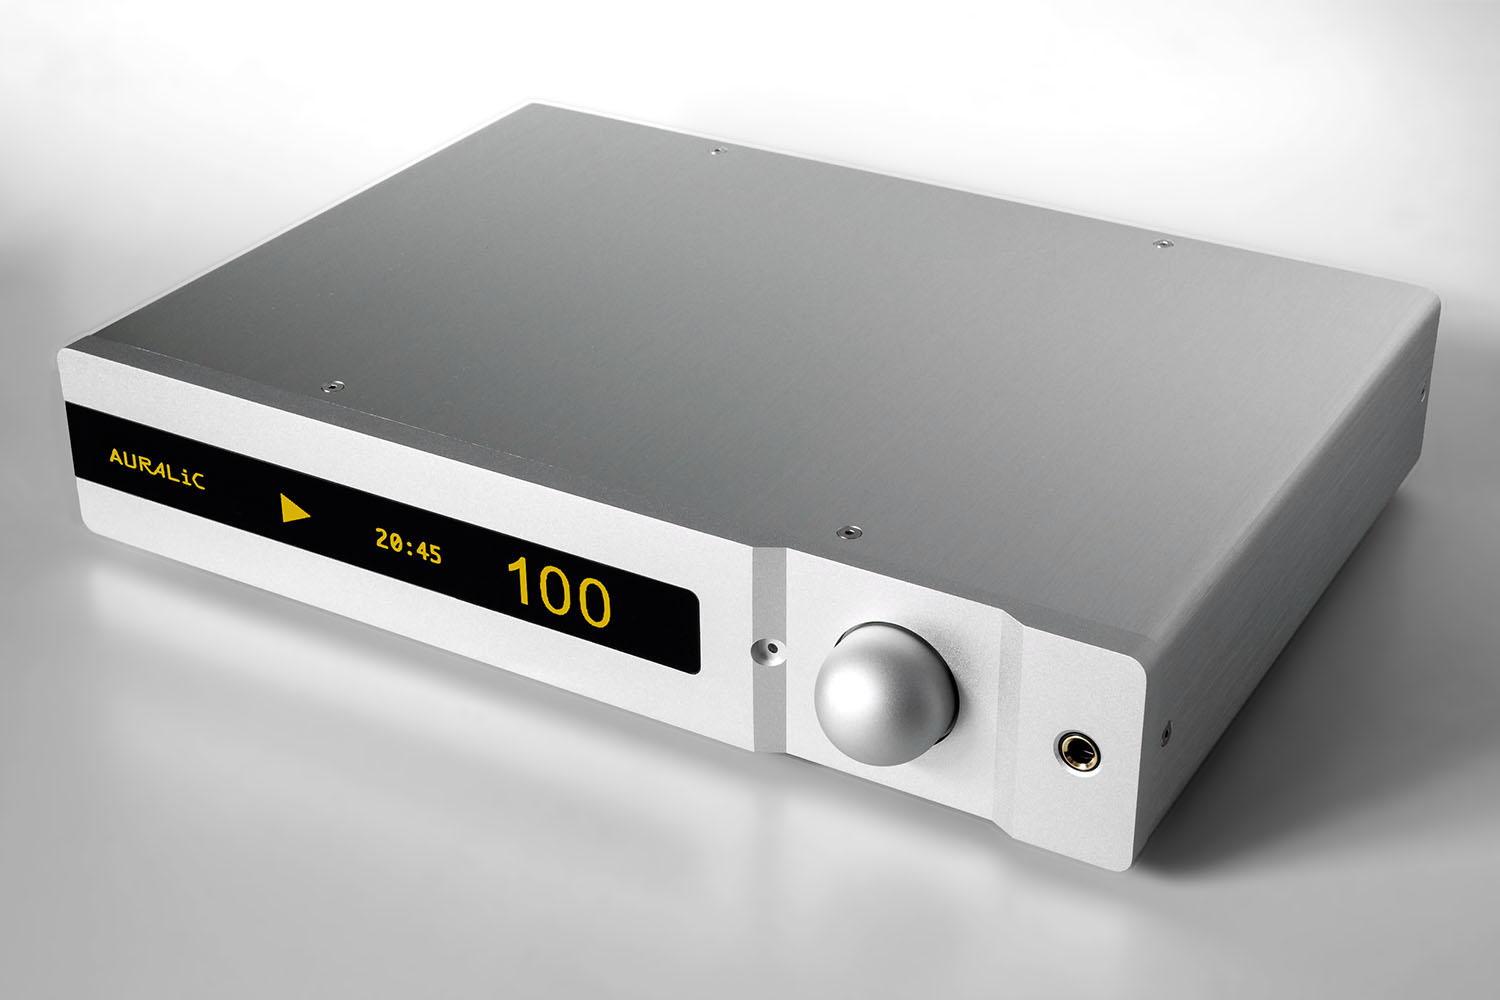 Auralic Altair Wireless Streaming Dac Pre Amplifier Digital Audio Platform Is Developed Based On Auralics Award Winning Vega Process And Lightning